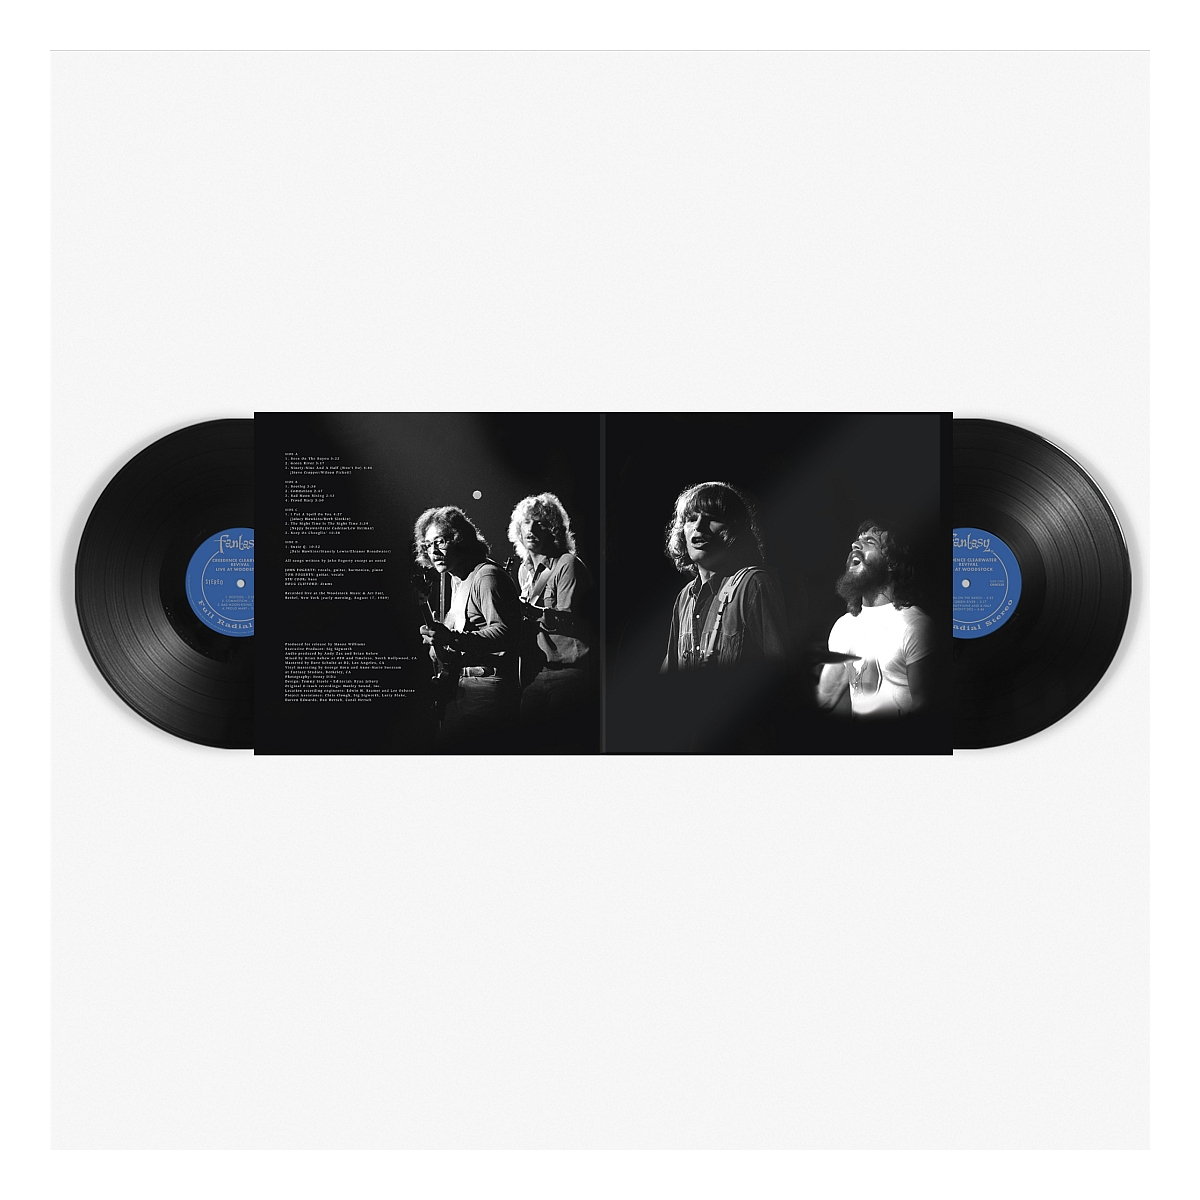 Creedence Clearwater Revival - Live at Woodstock (2 LP Set)